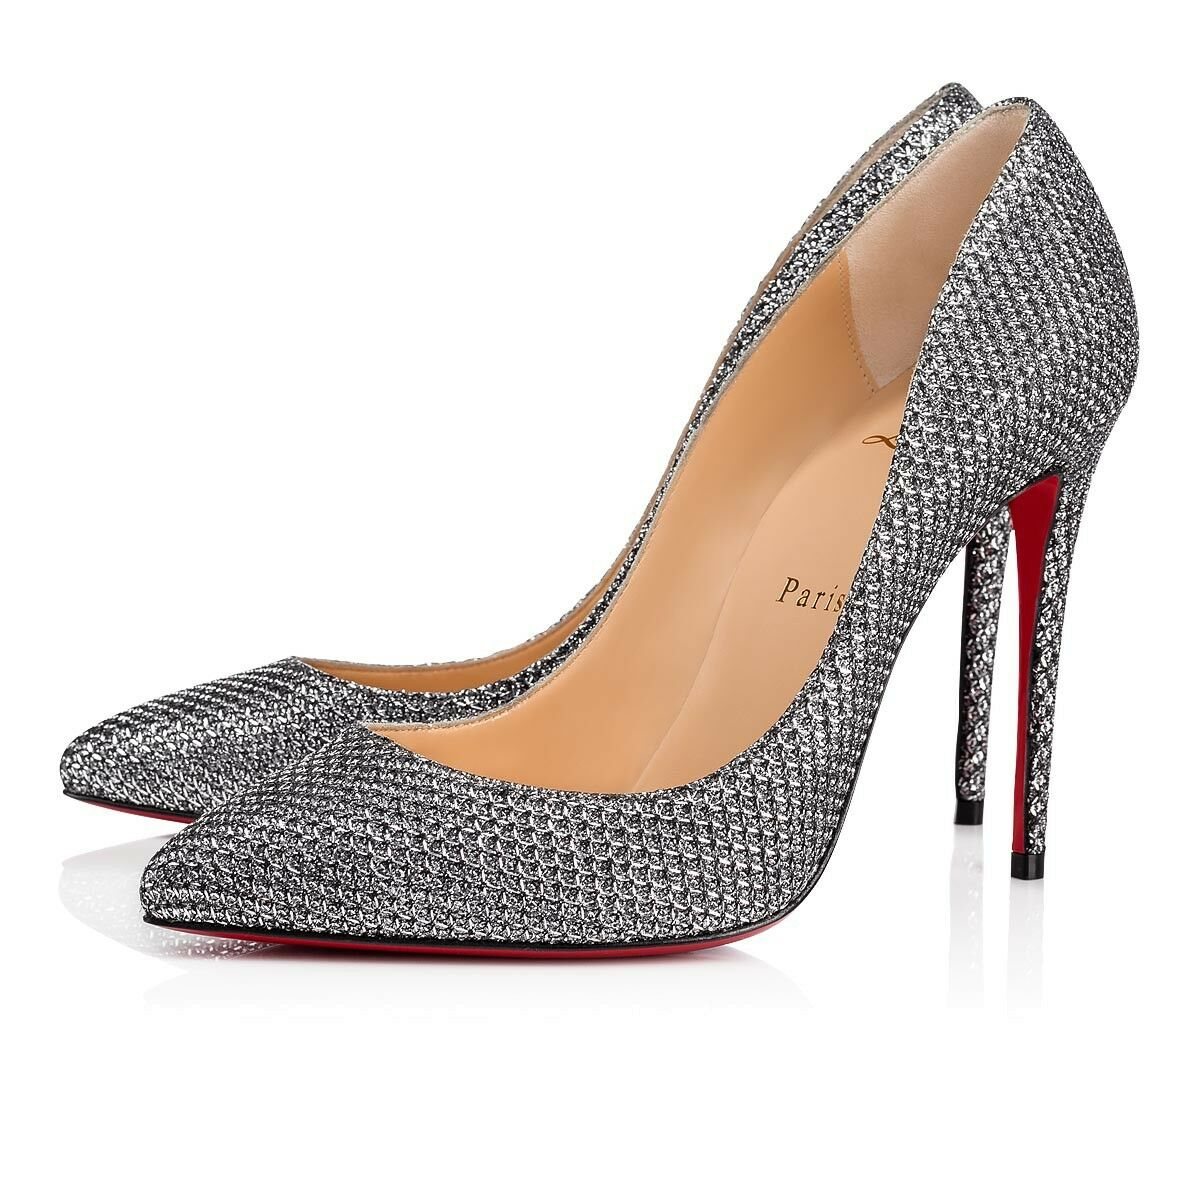 NIB Christian Louboutin Pigalle Follies 100 Antic Silver Glitter Heel Pump 41